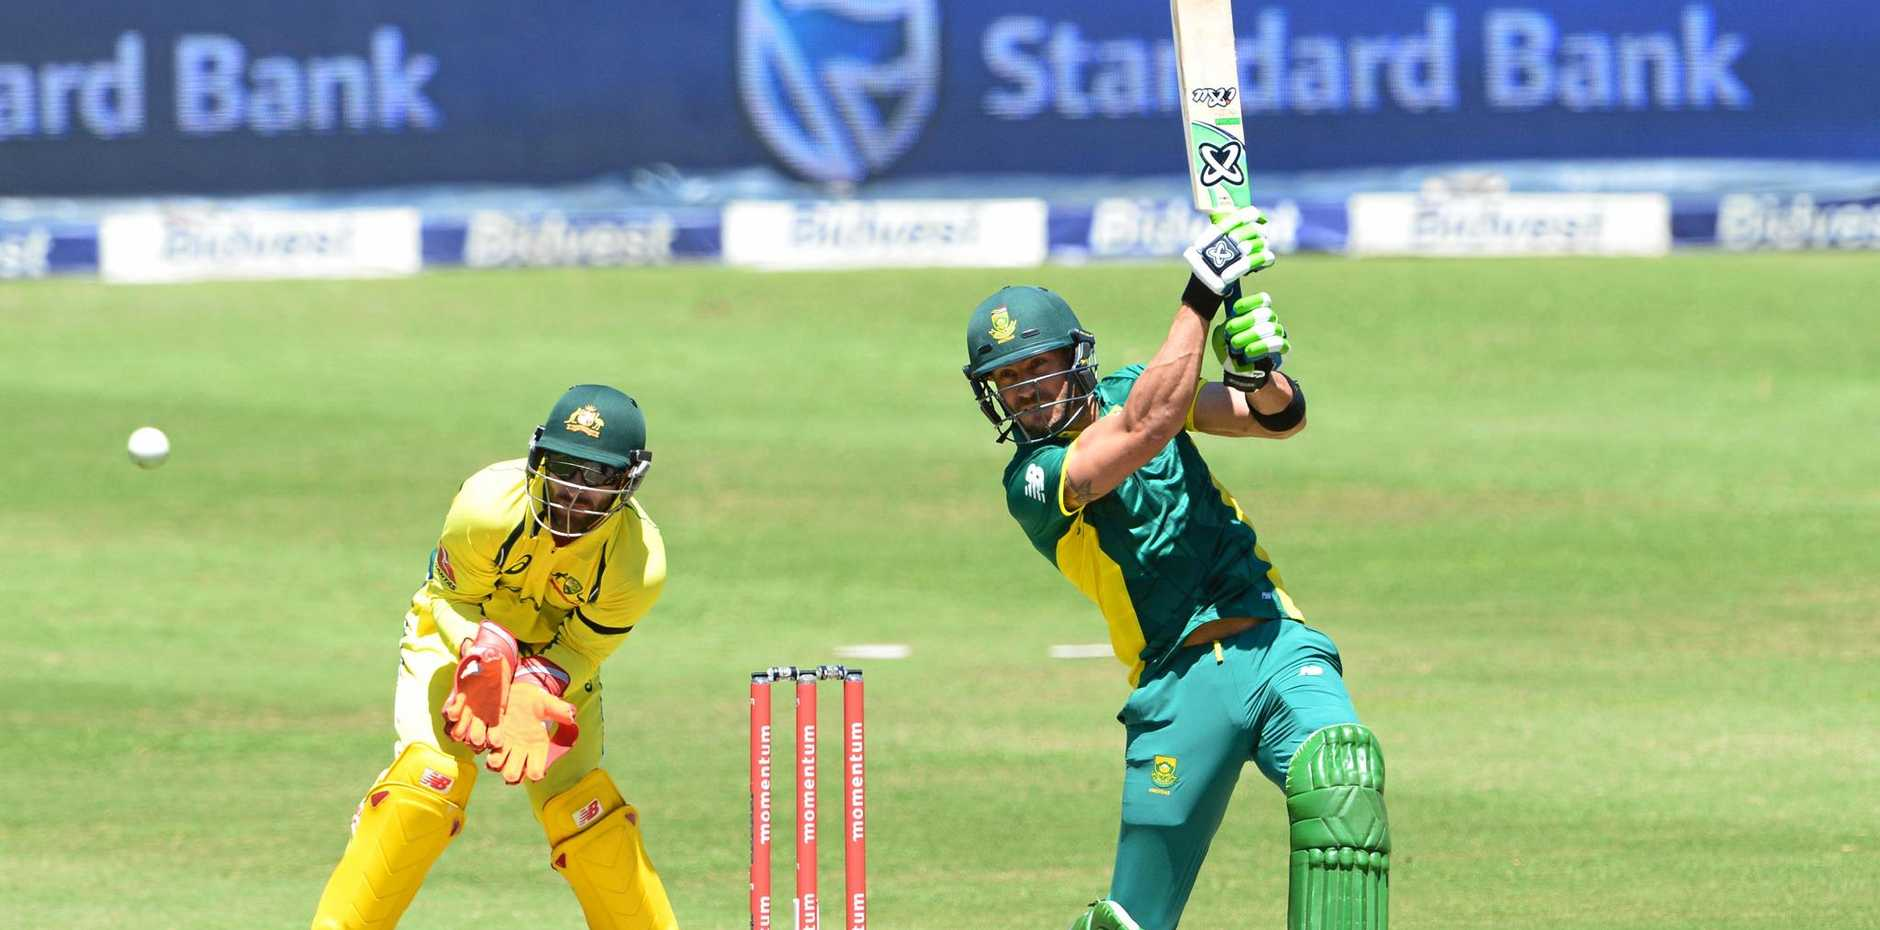 HOMEWORK TIME: South Africa captain Faf du Plessis is preparing to take on Mitchell Starc.